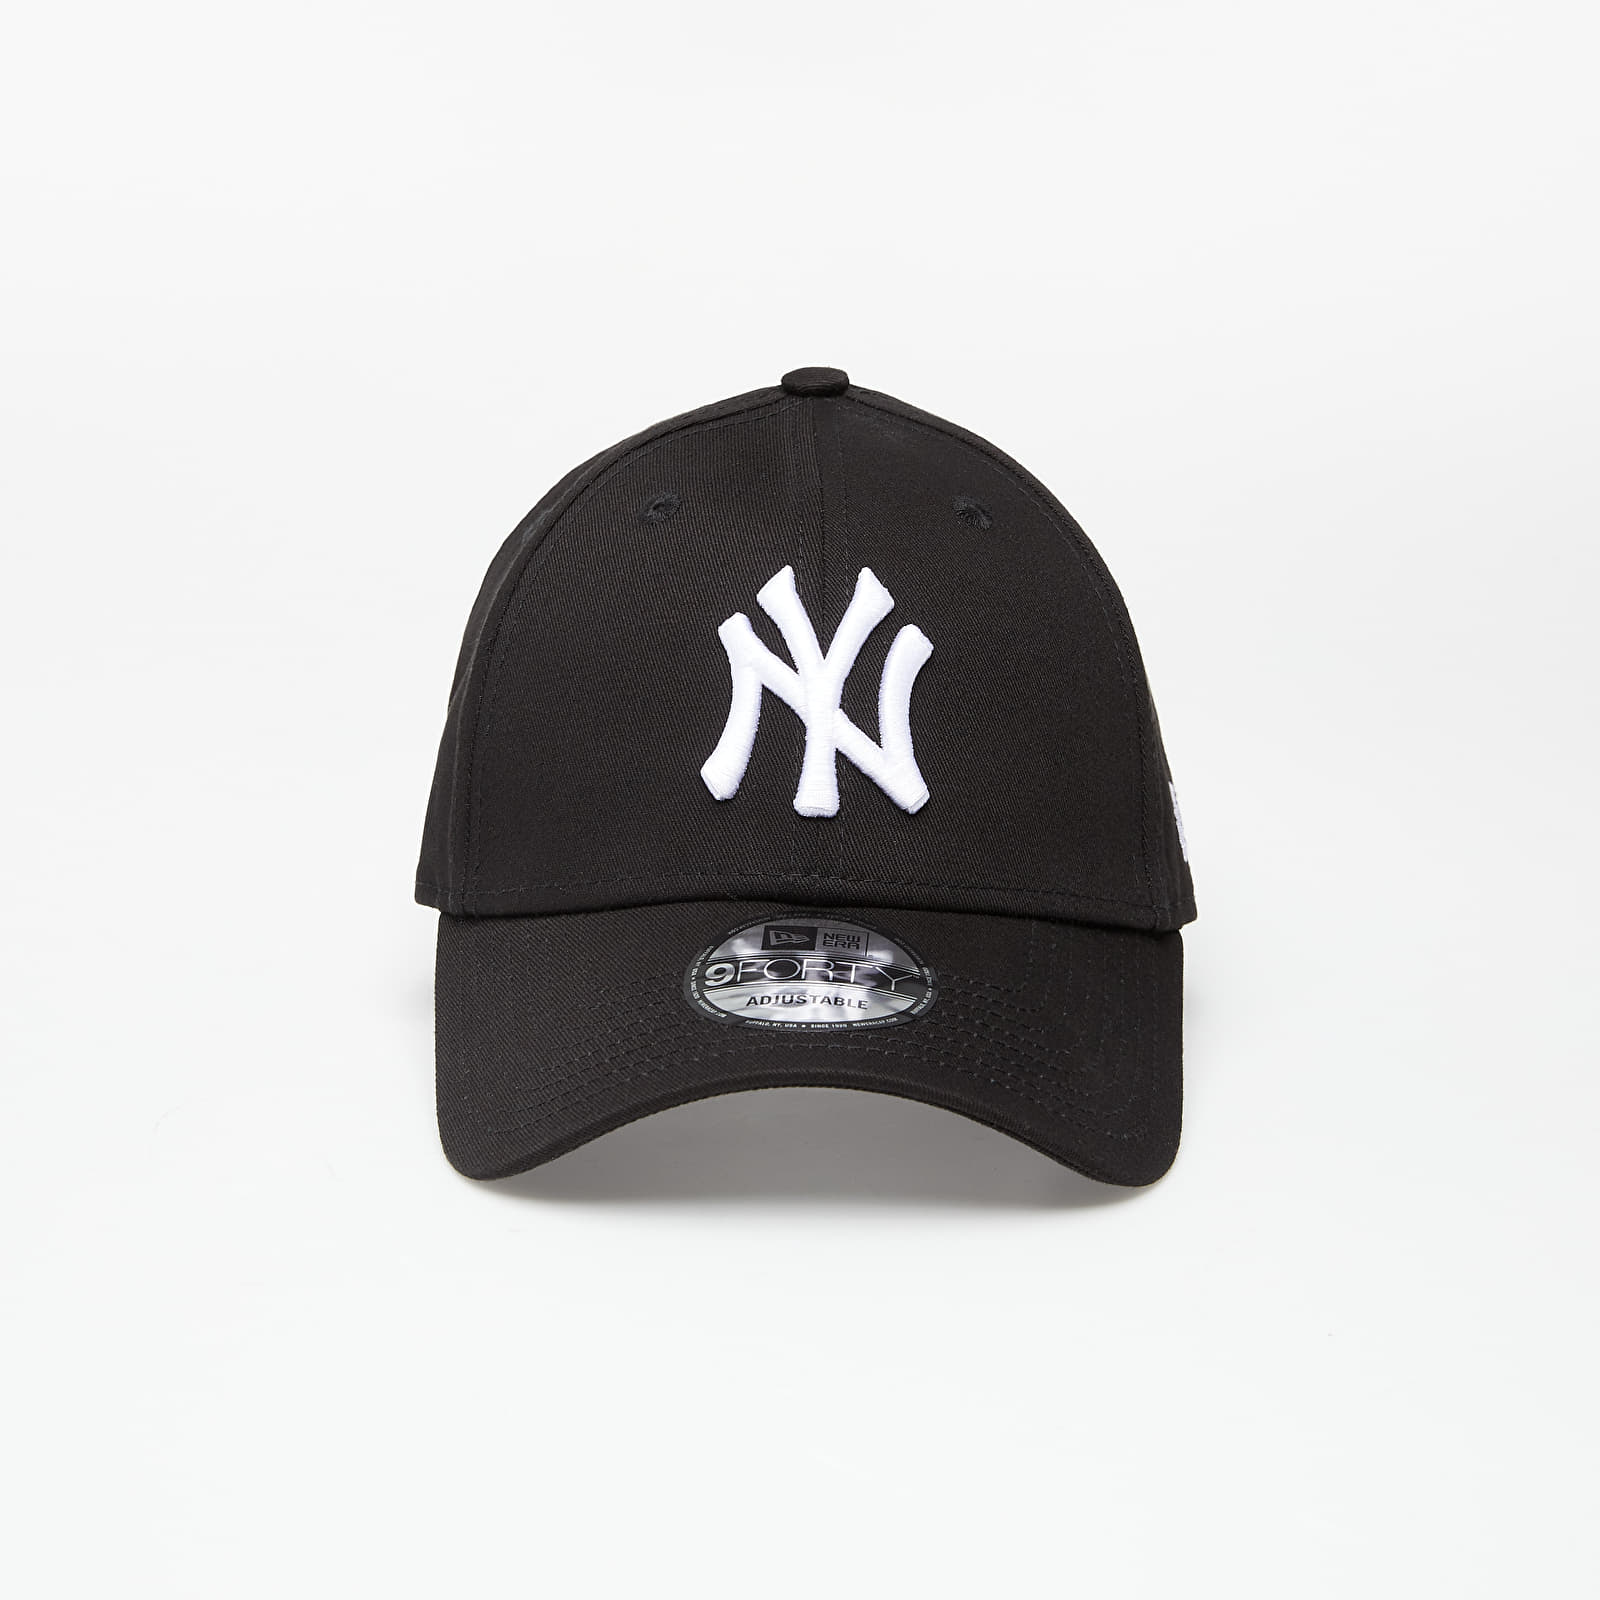 Čepice New Era Cap 9Forty Mlb League Basic New York Yankees Black/ White